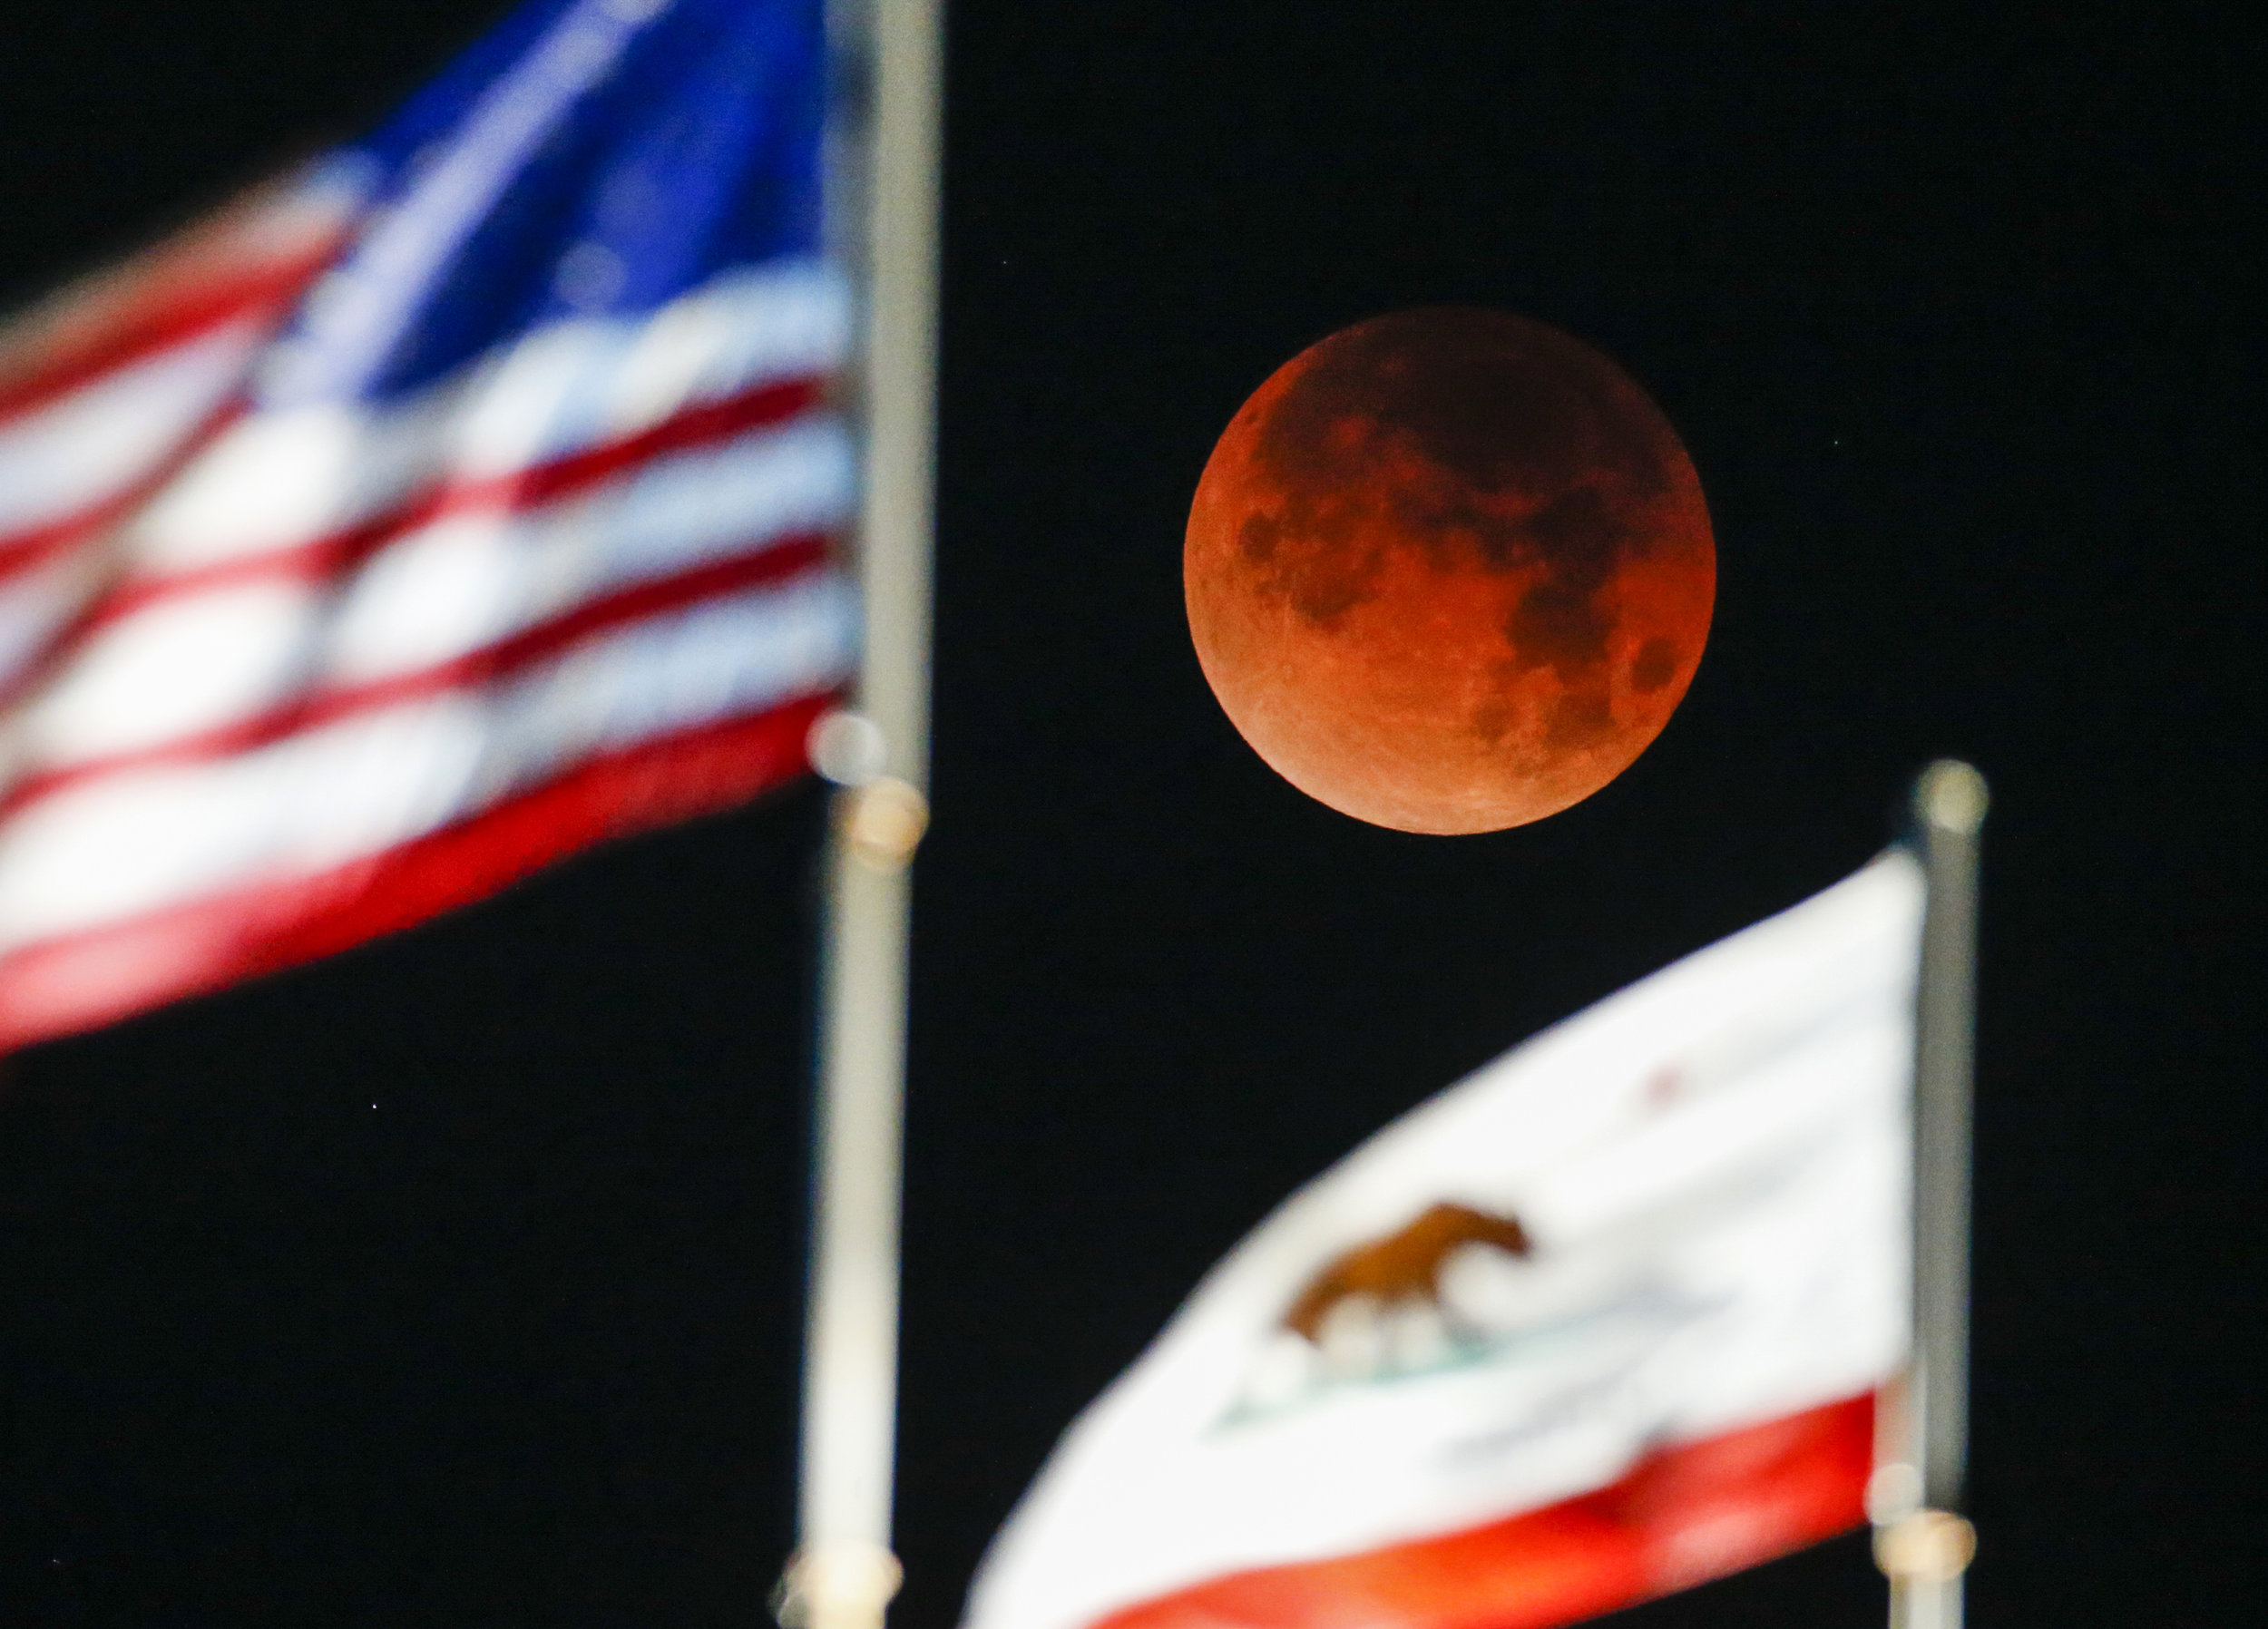 A rare celestial occurrence called a 'Super Blue Blood Moon' is seen behind the flags of U.S. and California State at Santa Monica Beach in Santa Monica, California, Wednesday, Jan. 31, 2018.